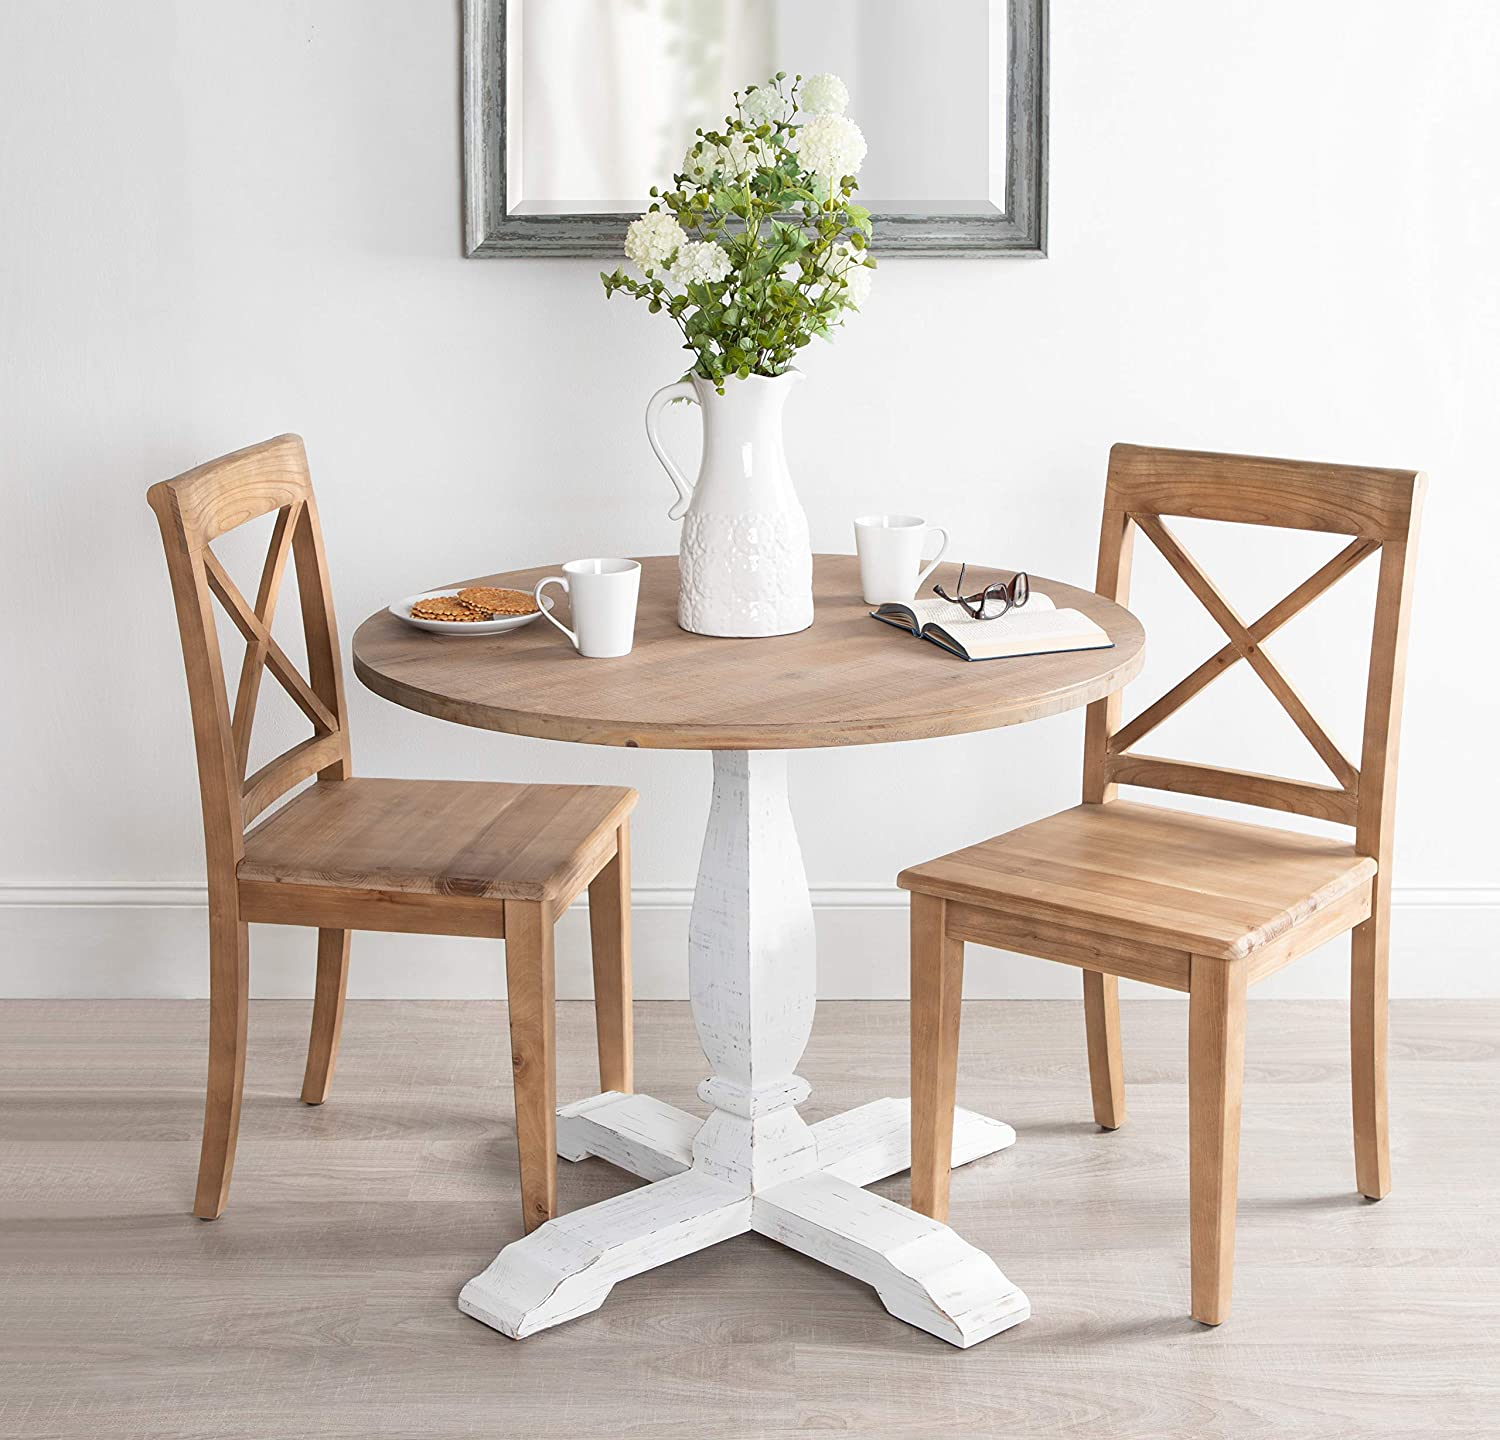 cute-small-farmhouse-round-dining-room-table-whitewash-pedestal-base-natural-wood-top-fun-furniture-ideas-for-eat-in-kitchen-breakfast-nook